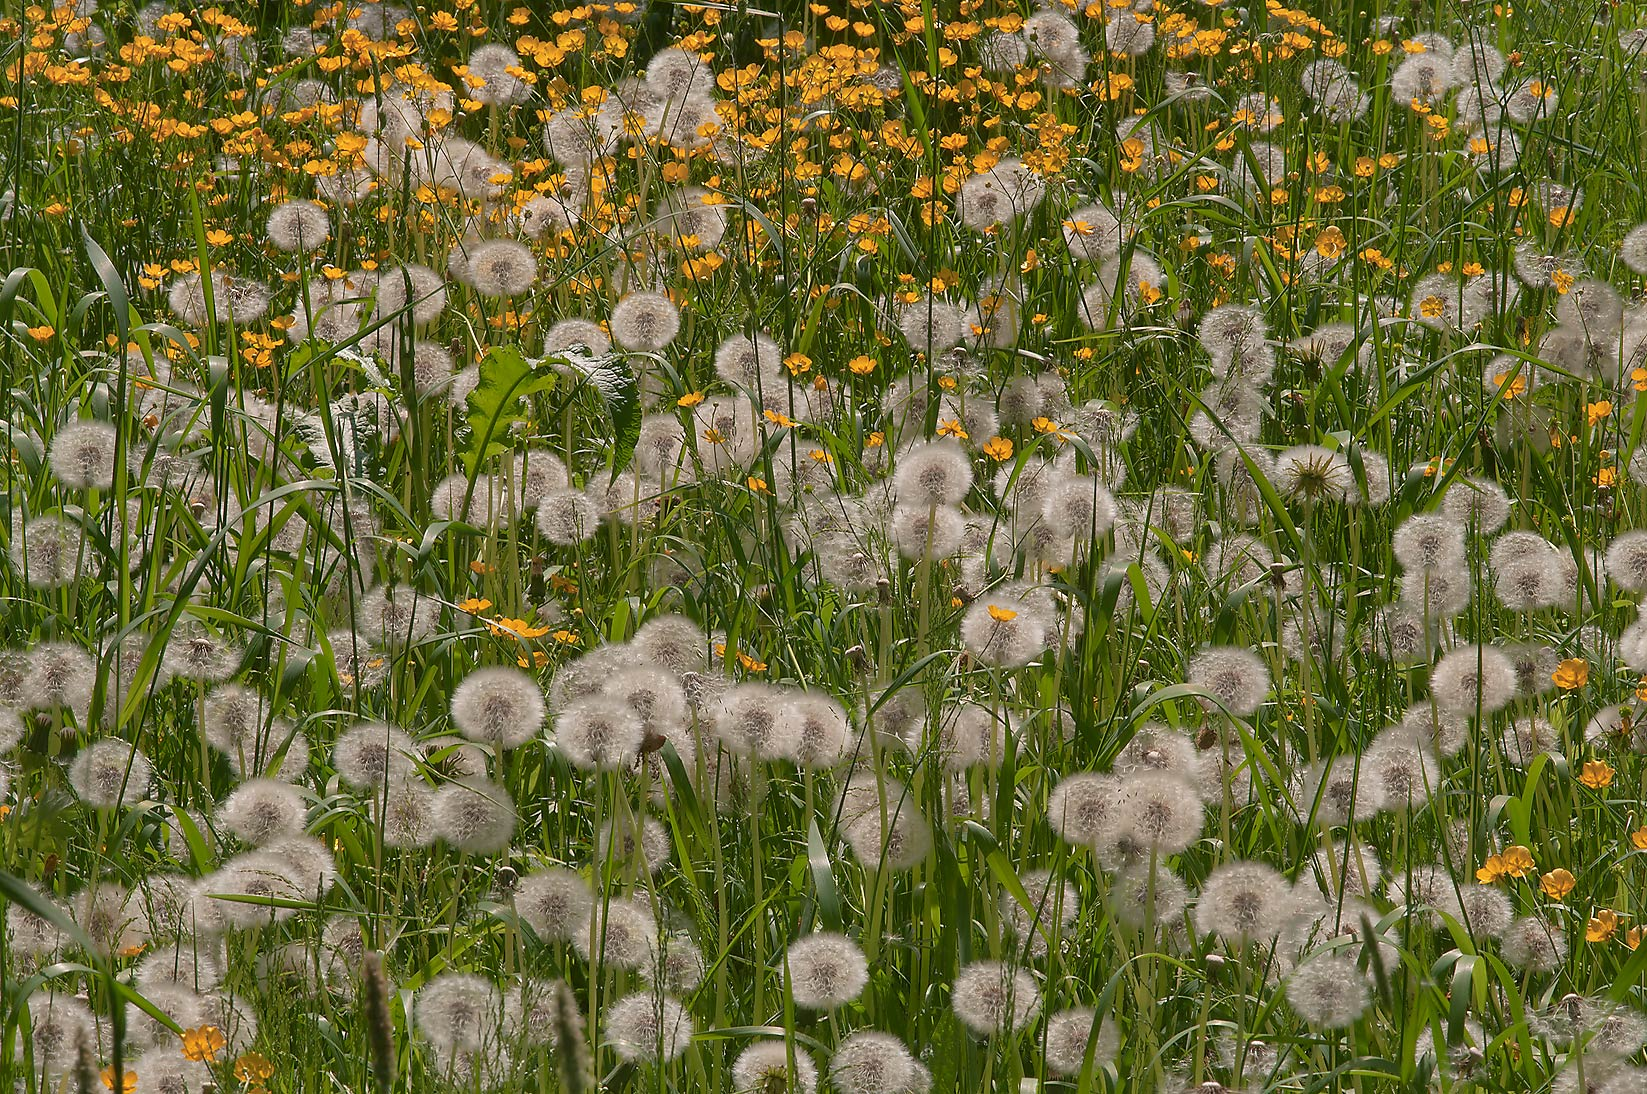 Seed heads of dandelions in Botanic Gardens of...Institute. St.Petersburg, Russia